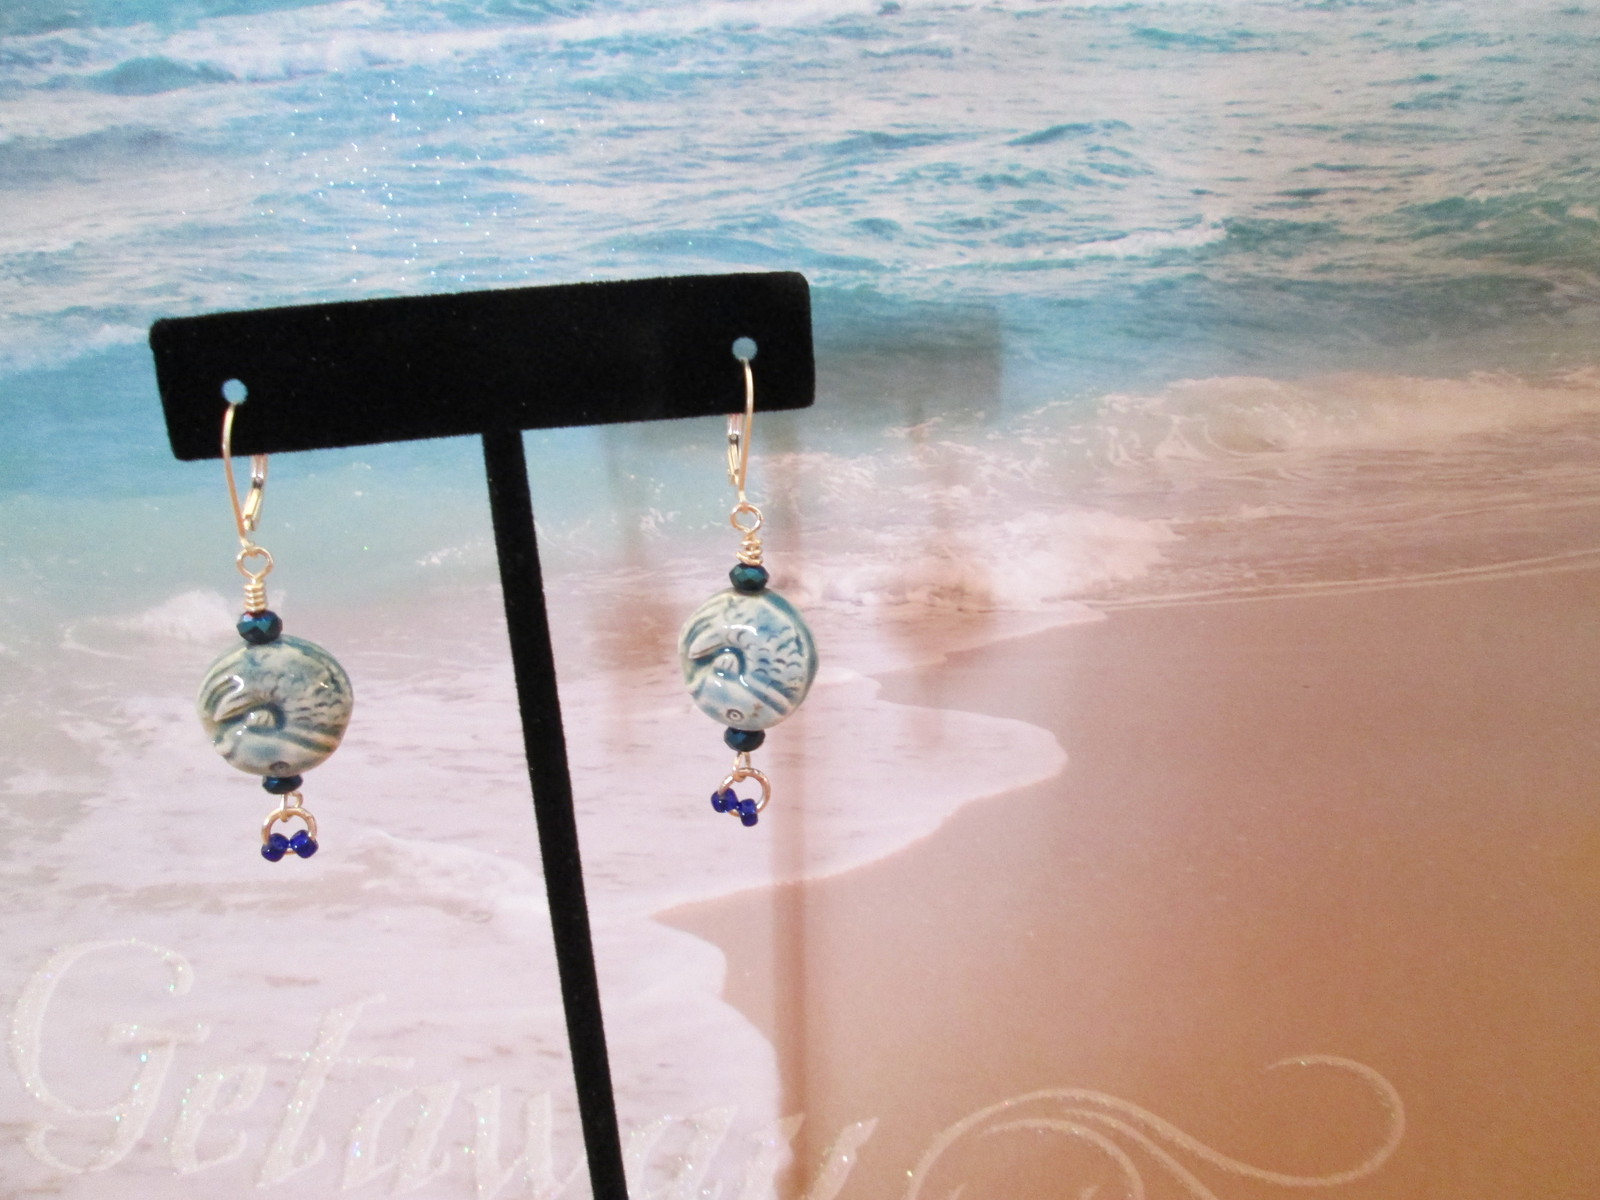 """I Sea You"".  The stones are variegated blue and white, with two smaller hanging"